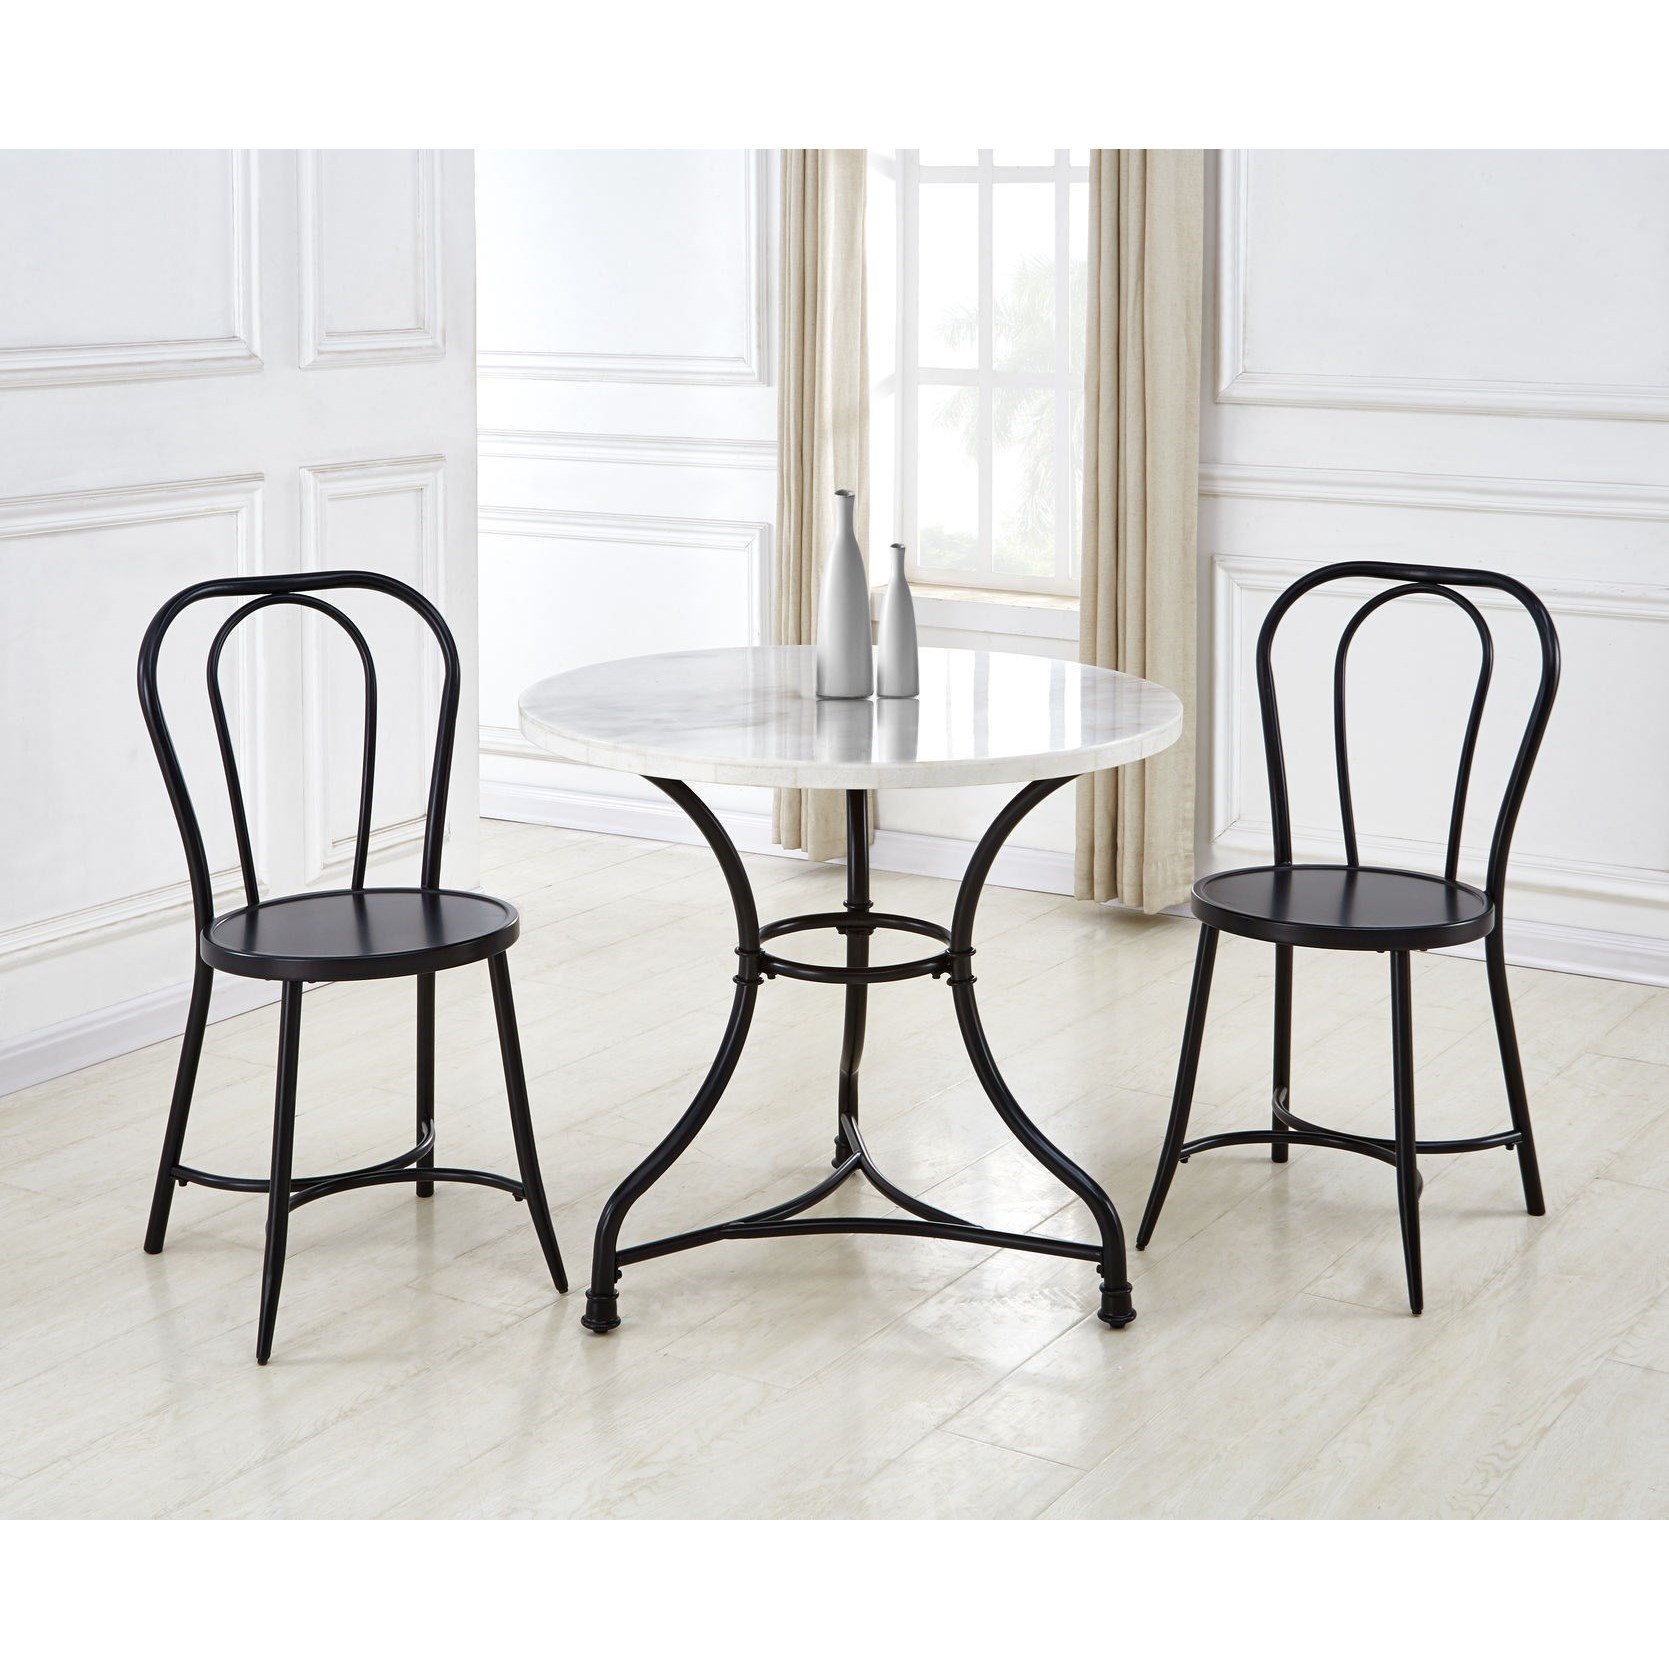 Claire 3-Piece Table and Chair Set by Steve Silver at Walker's Furniture